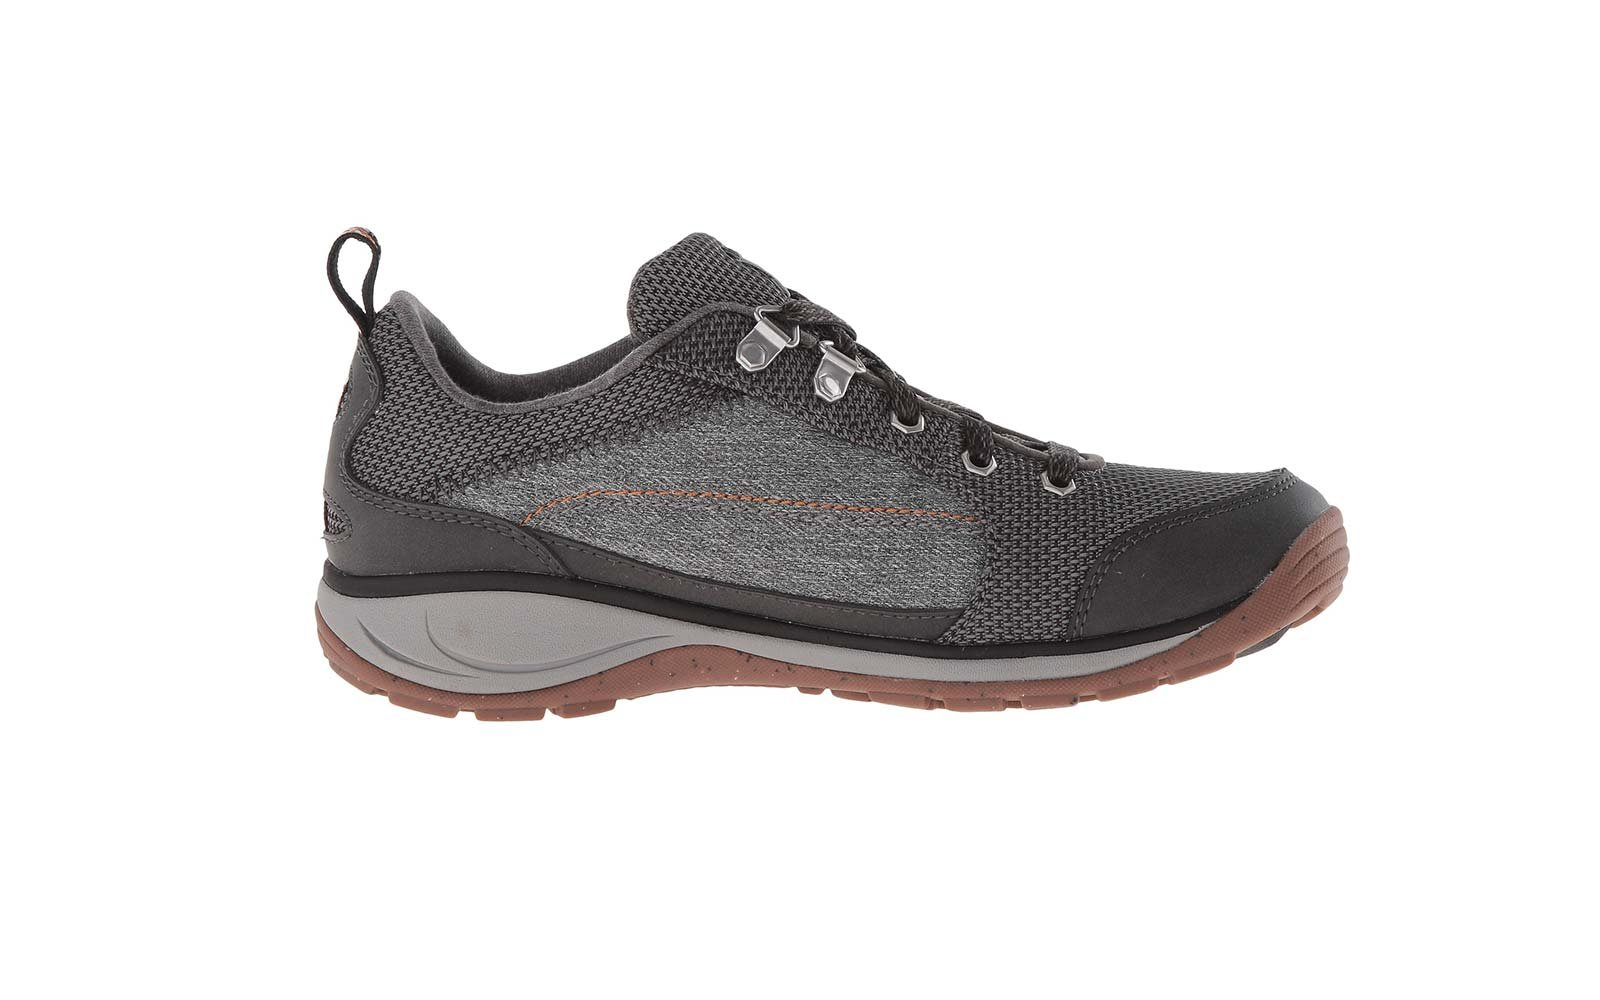 Chaco Female Hiking Boots